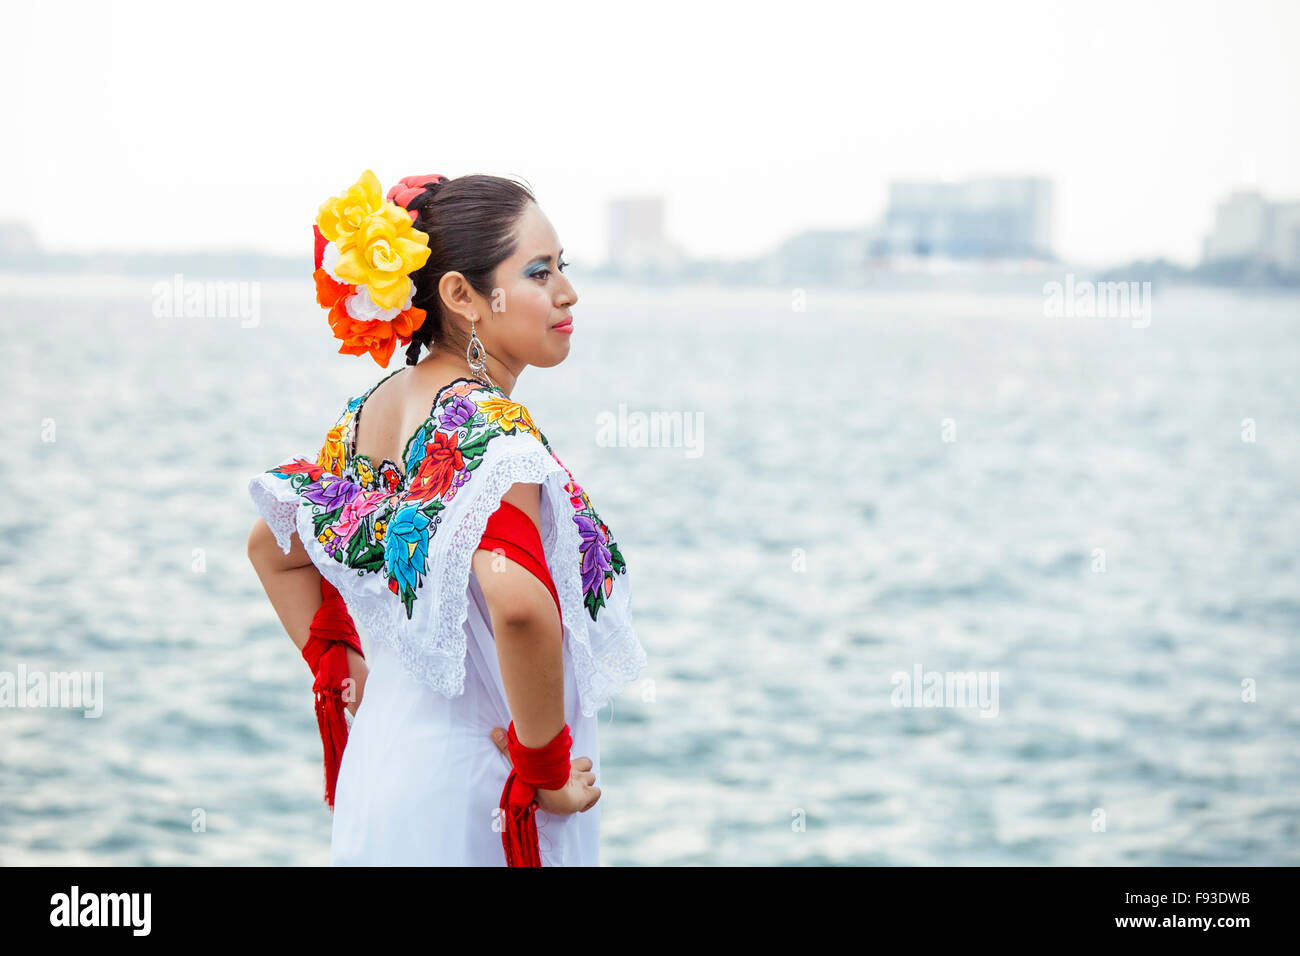 A folkloric dancer strikes a pose on the boardwalk in Puerto Vallarta, Mexico. - Stock Image